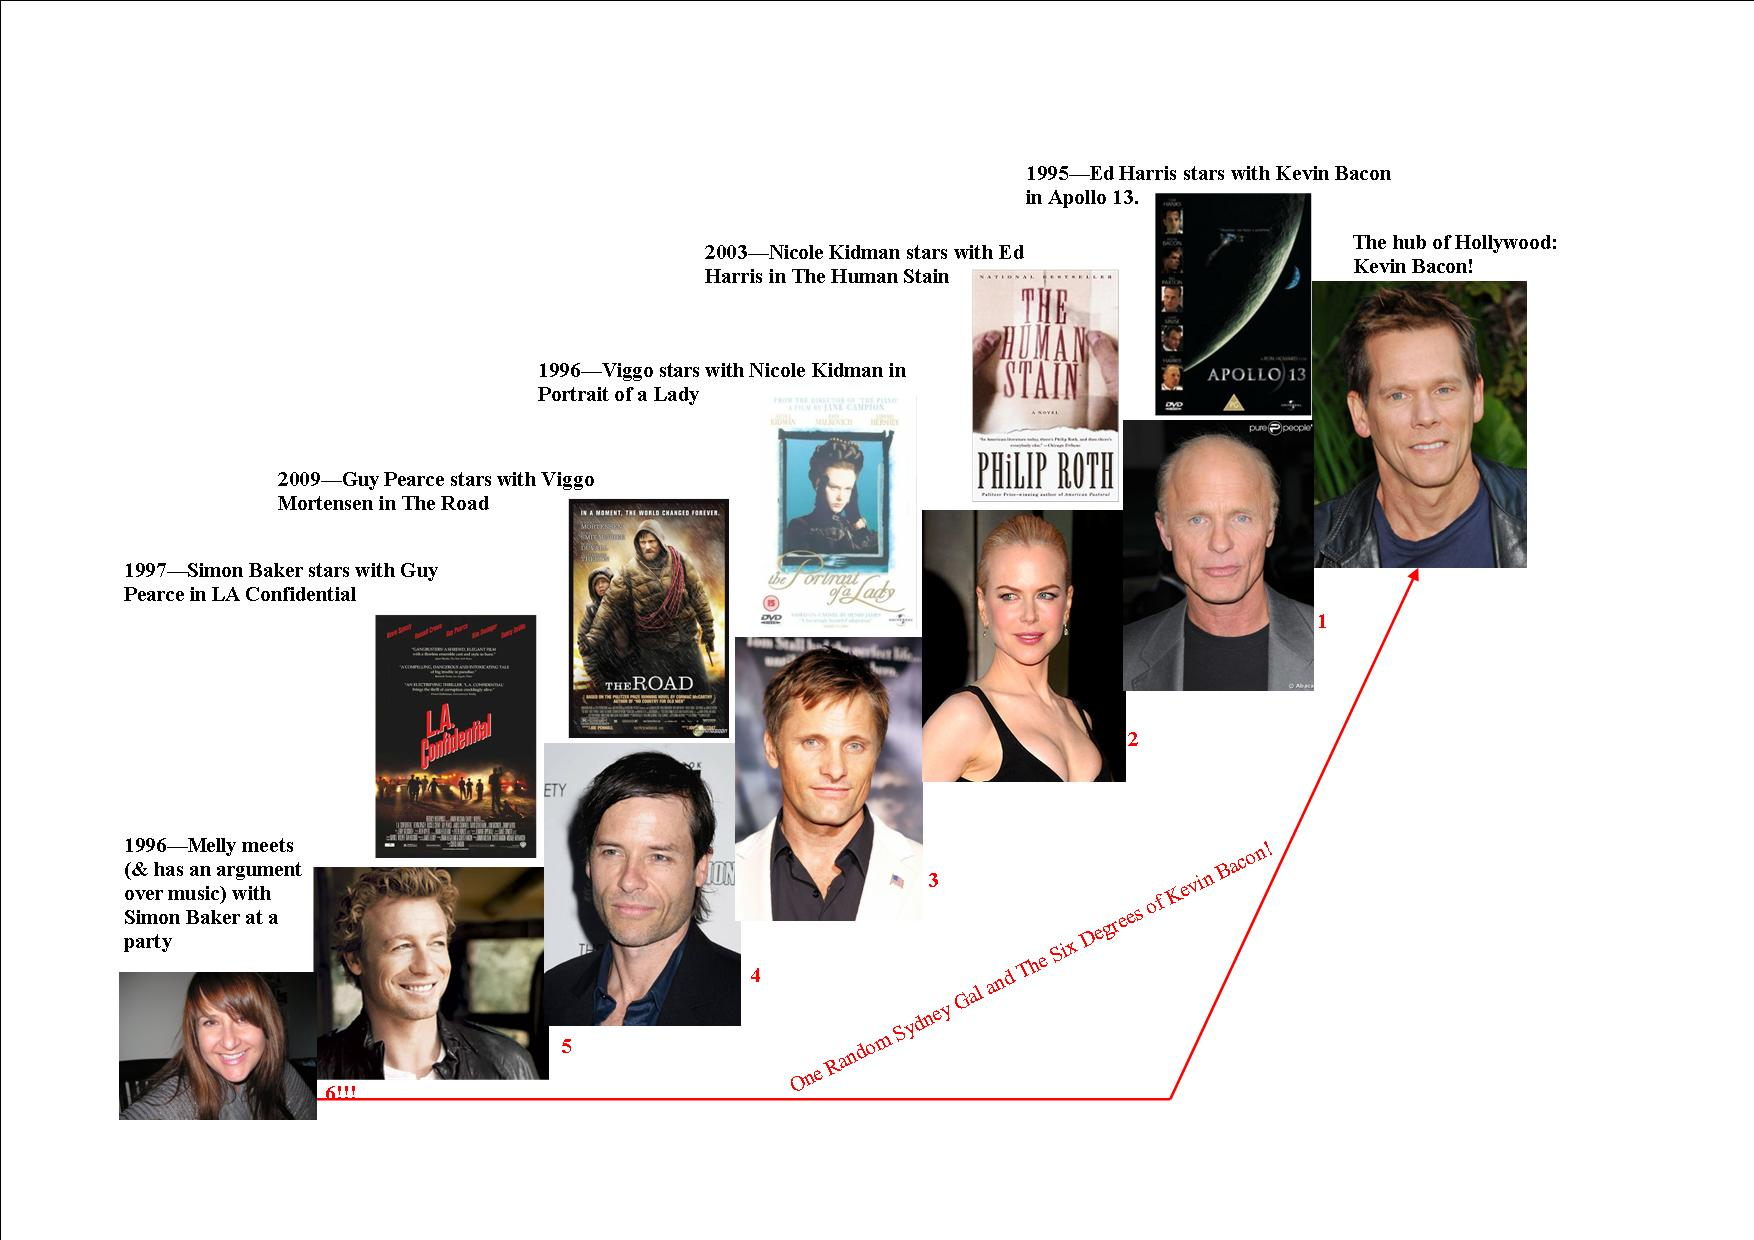 Kevin Bacon 6 Degrees Pictures